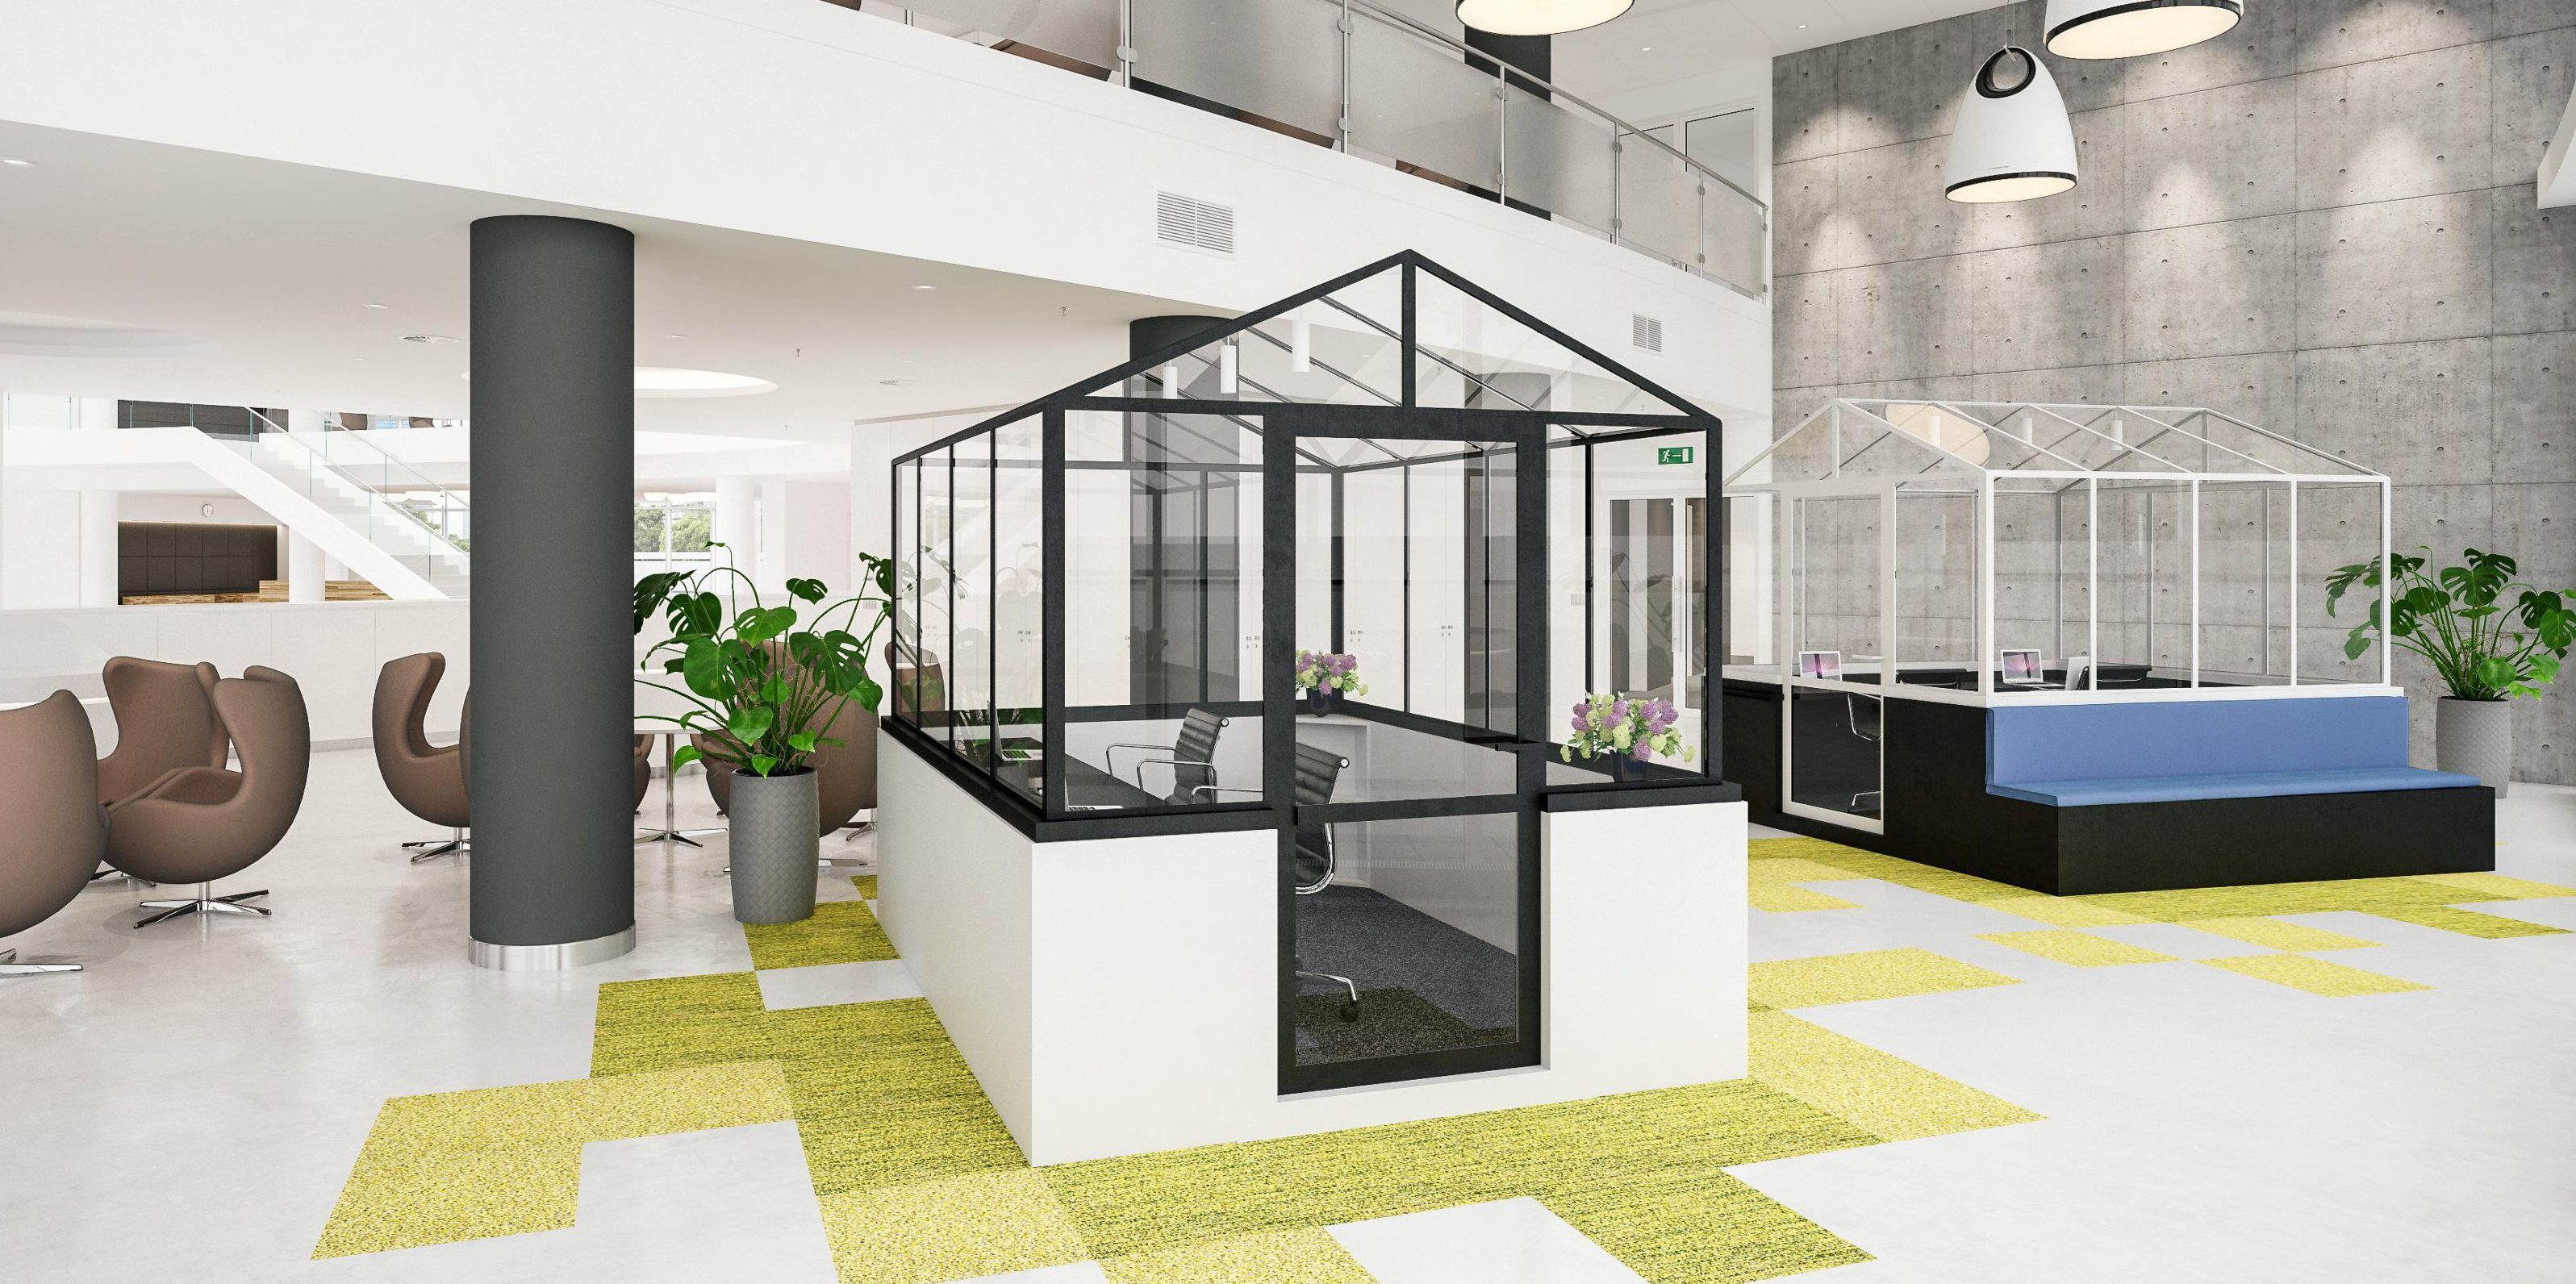 GLABES CoWorking-Module -Modell 2.0